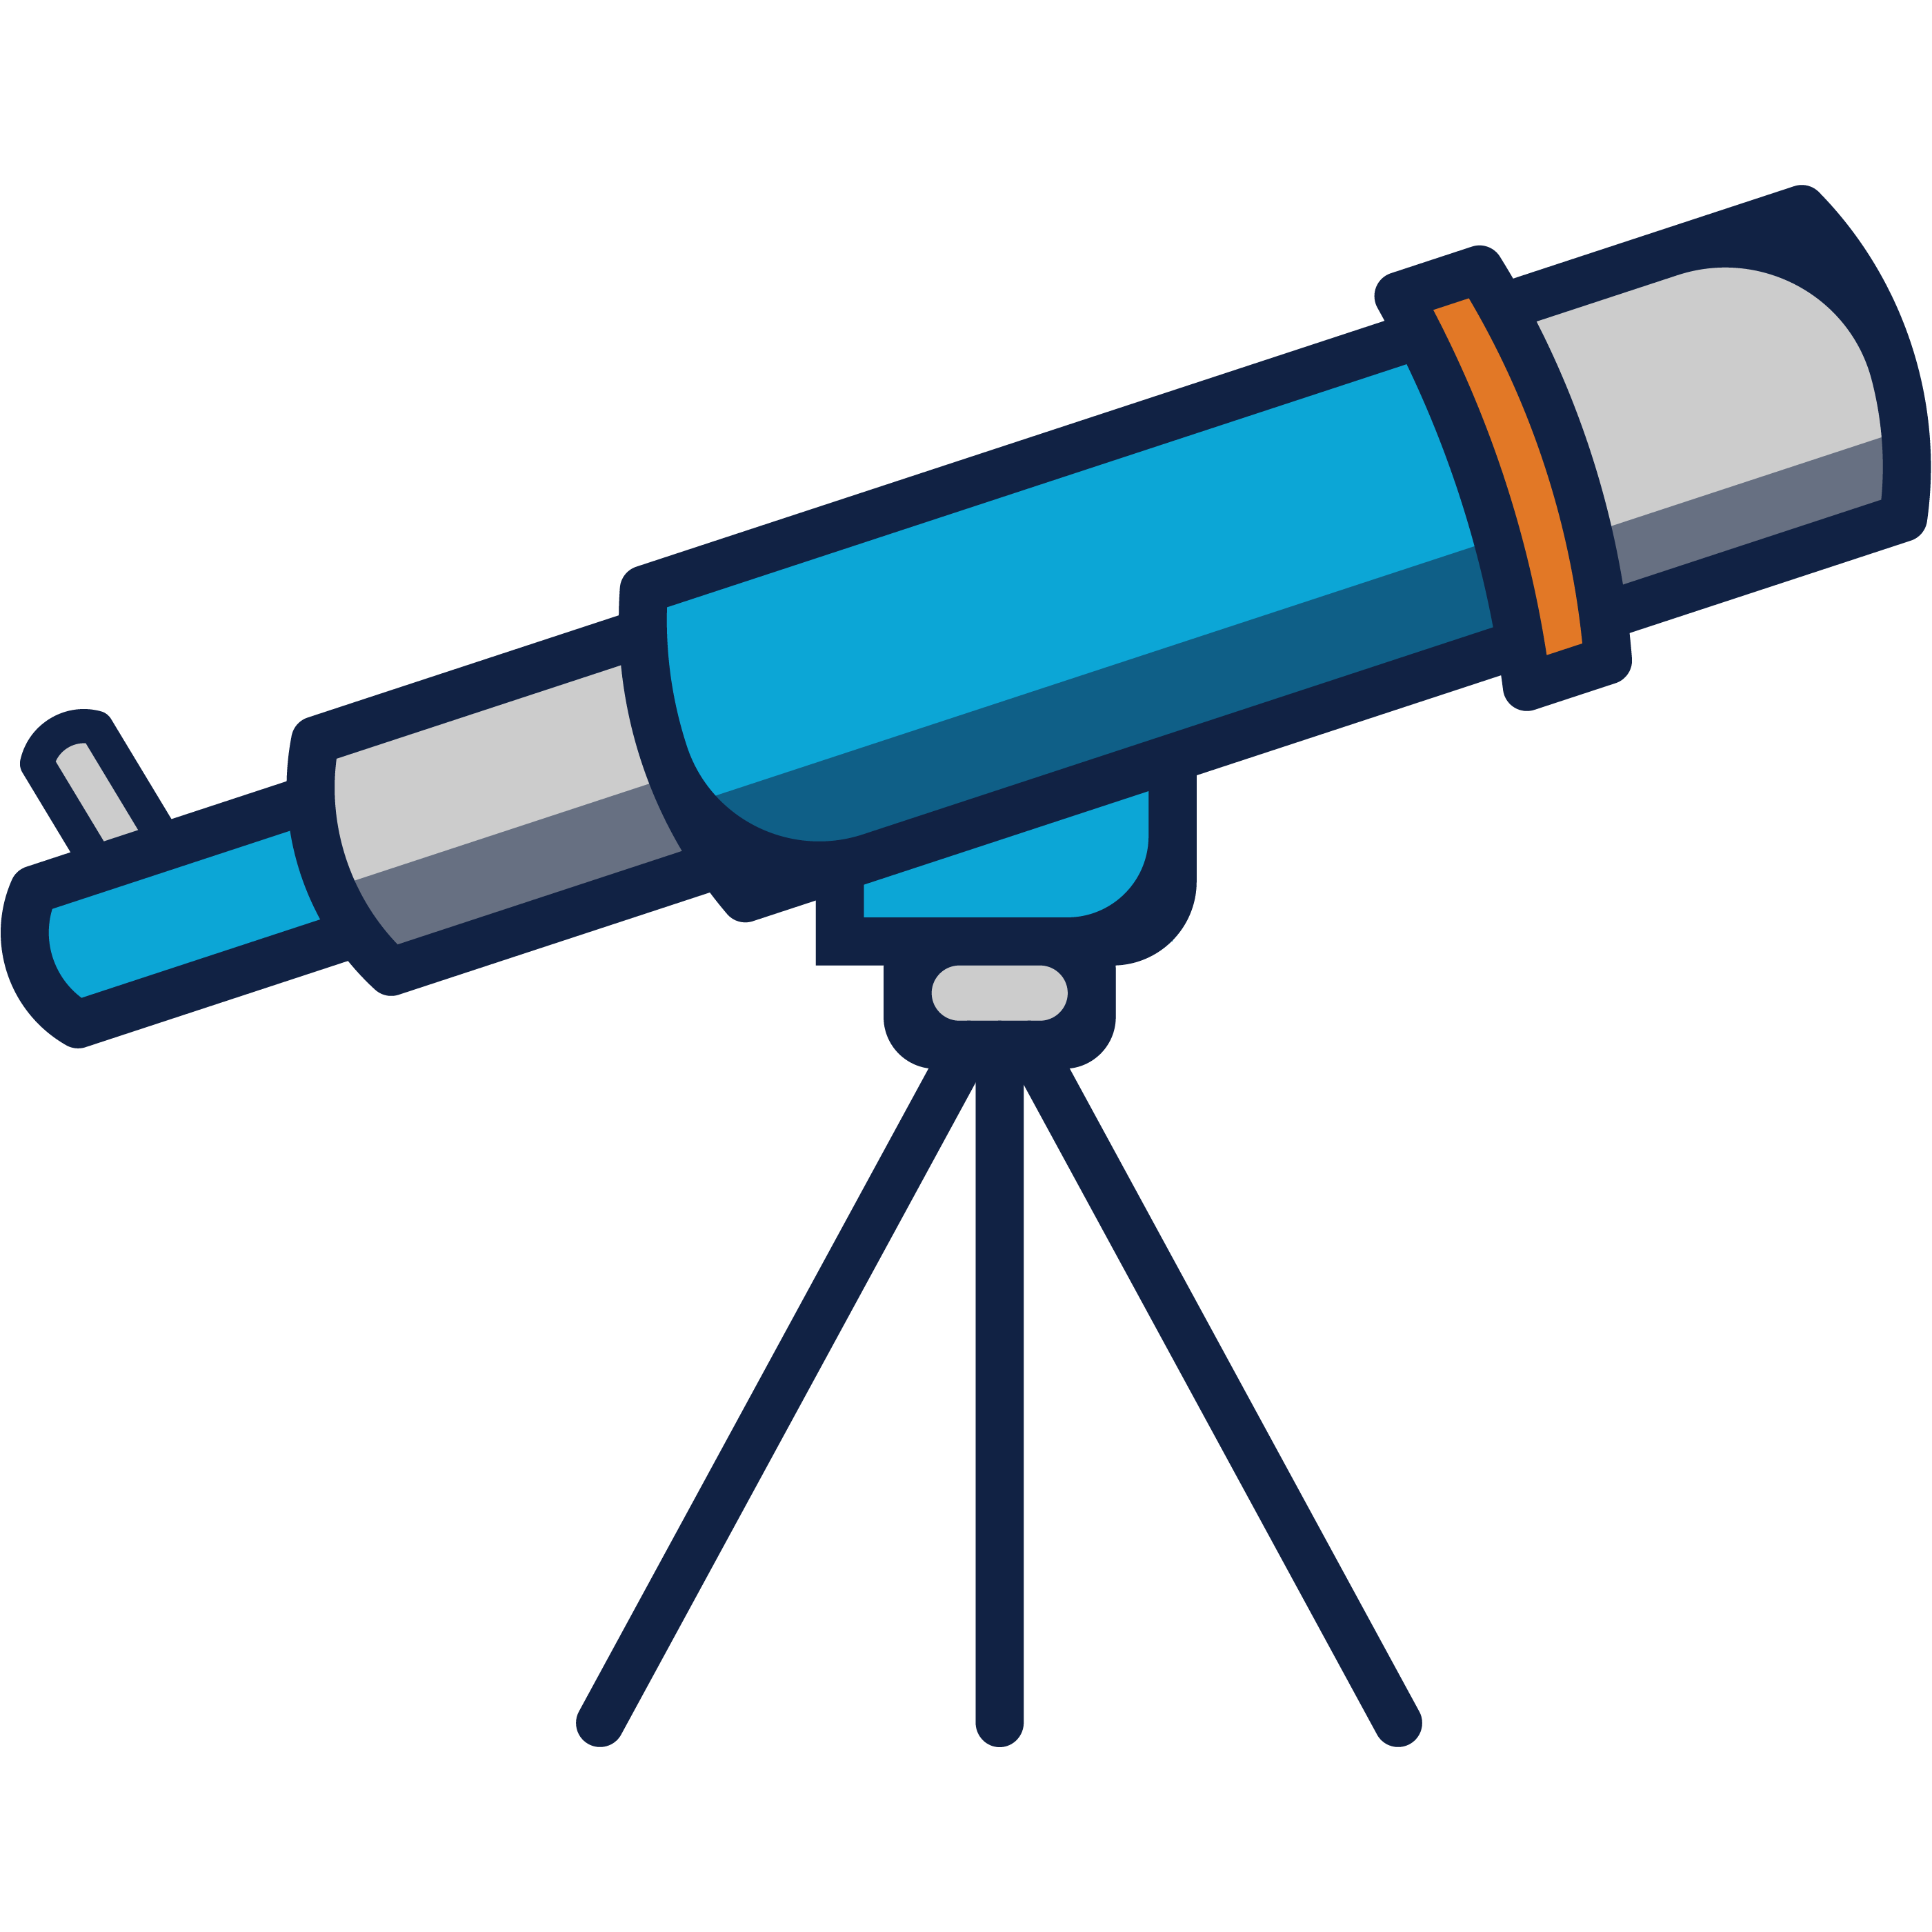 2D Vector Graphic of a Telescope